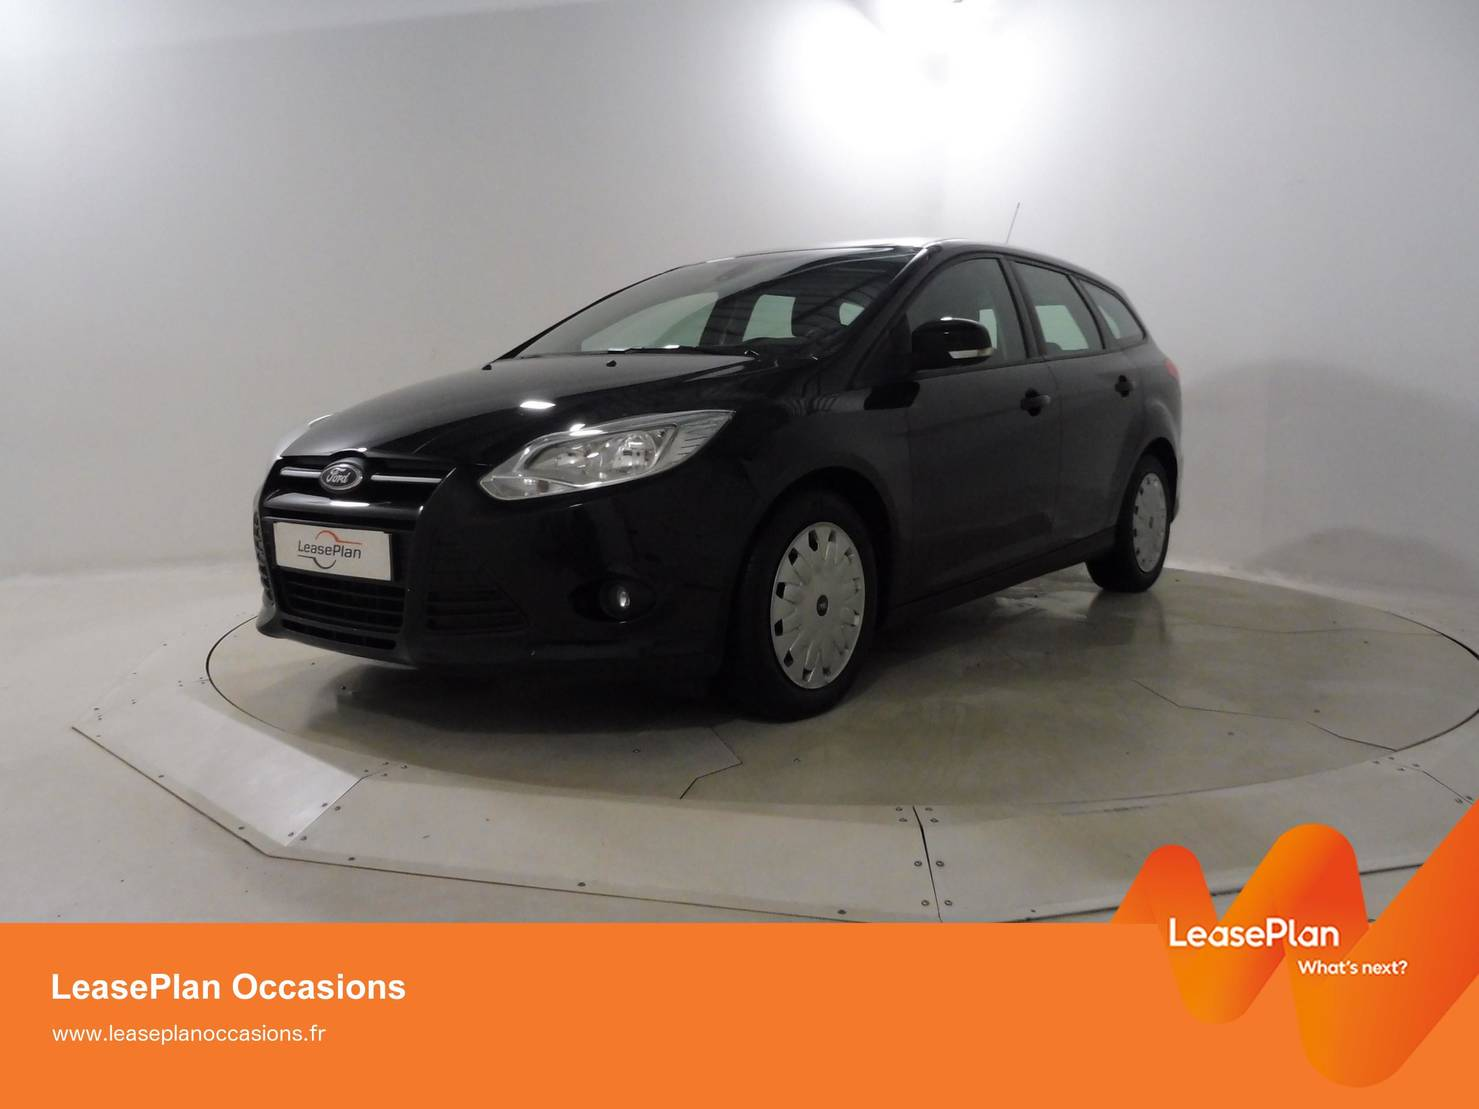 Ford Focus 1.6 TDCi 105 ECOnetic Technology 88g, Business Nav detail1